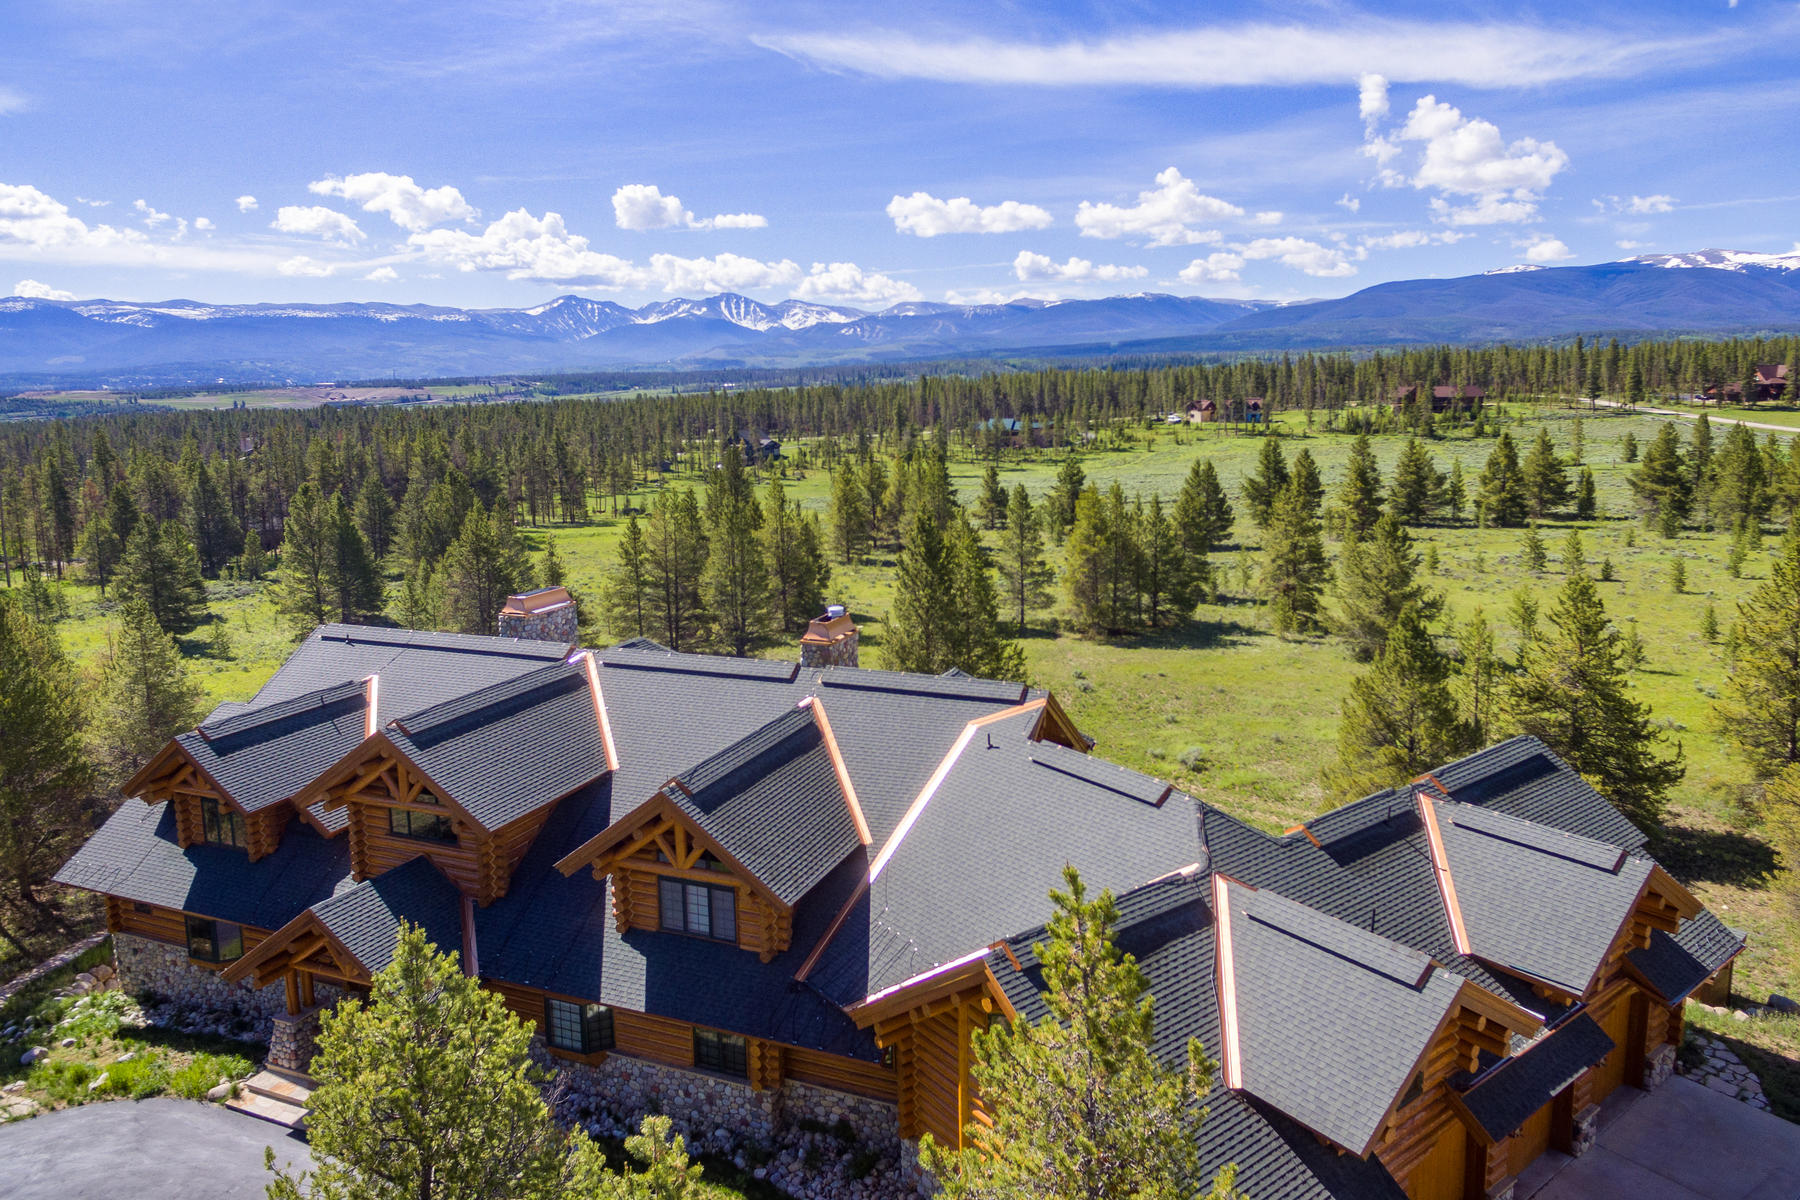 Single Family Homes for Active at Luxury Log Home 1256 GCR 5171 Fraser, Colorado 80442 United States